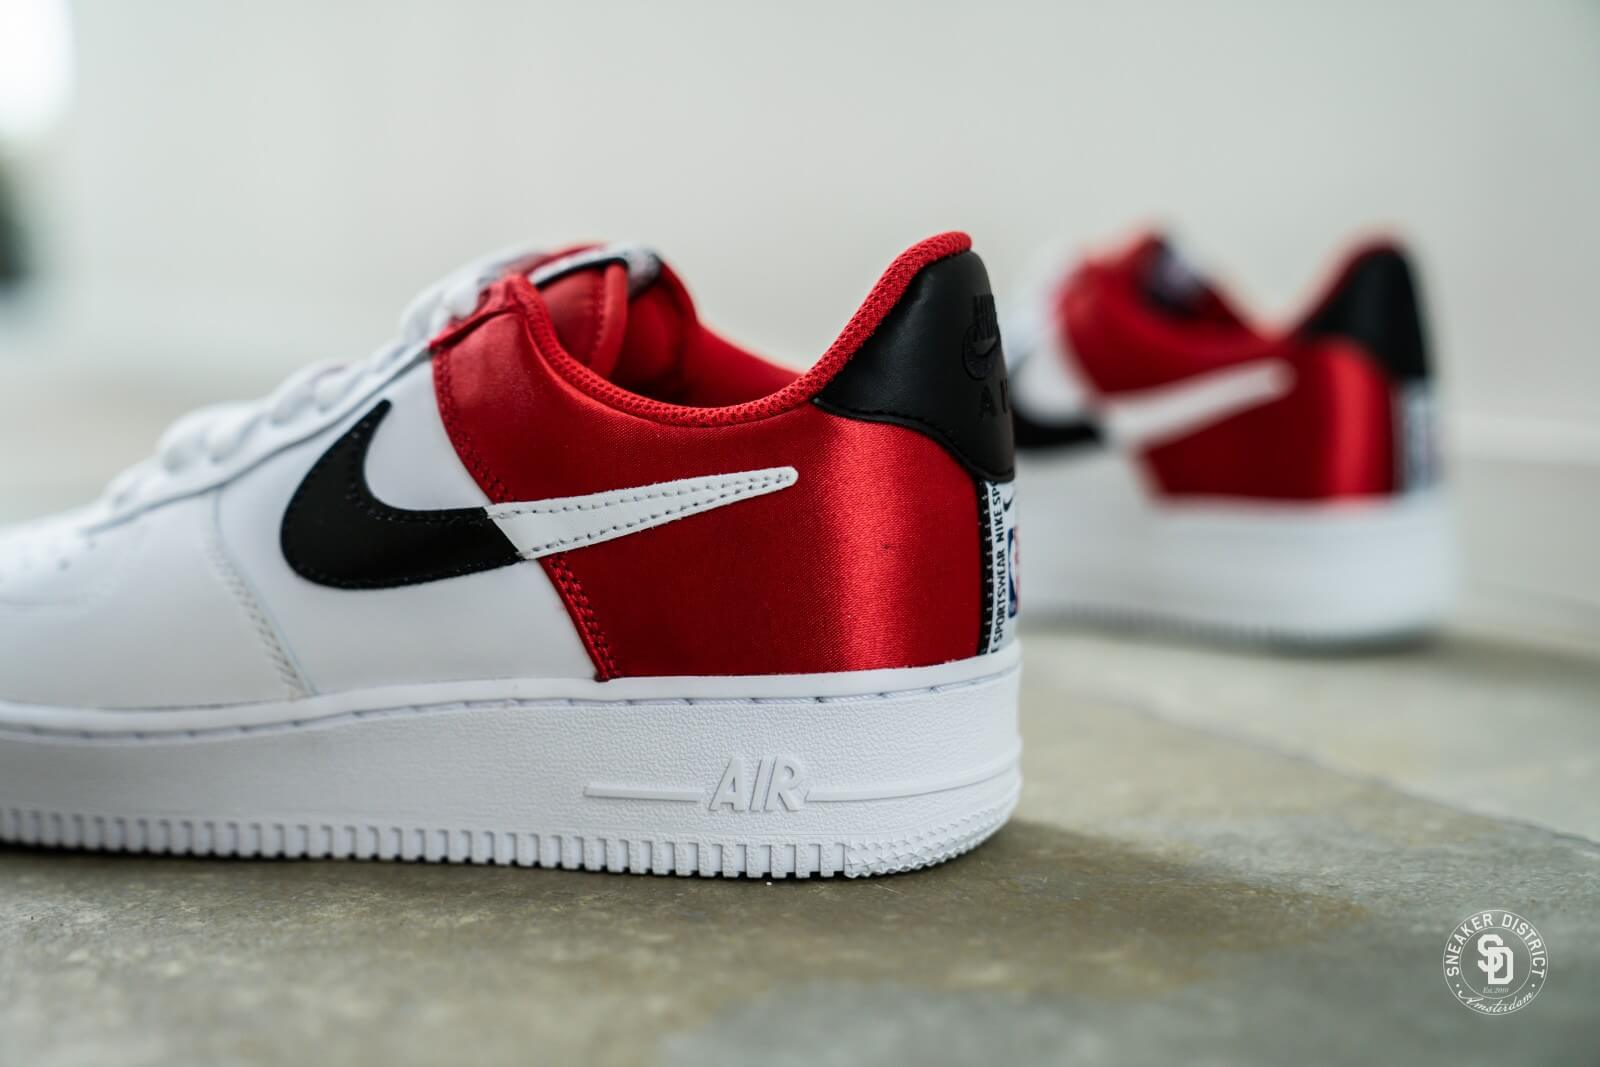 Nike Air Force 1 '07 LV8 University Red